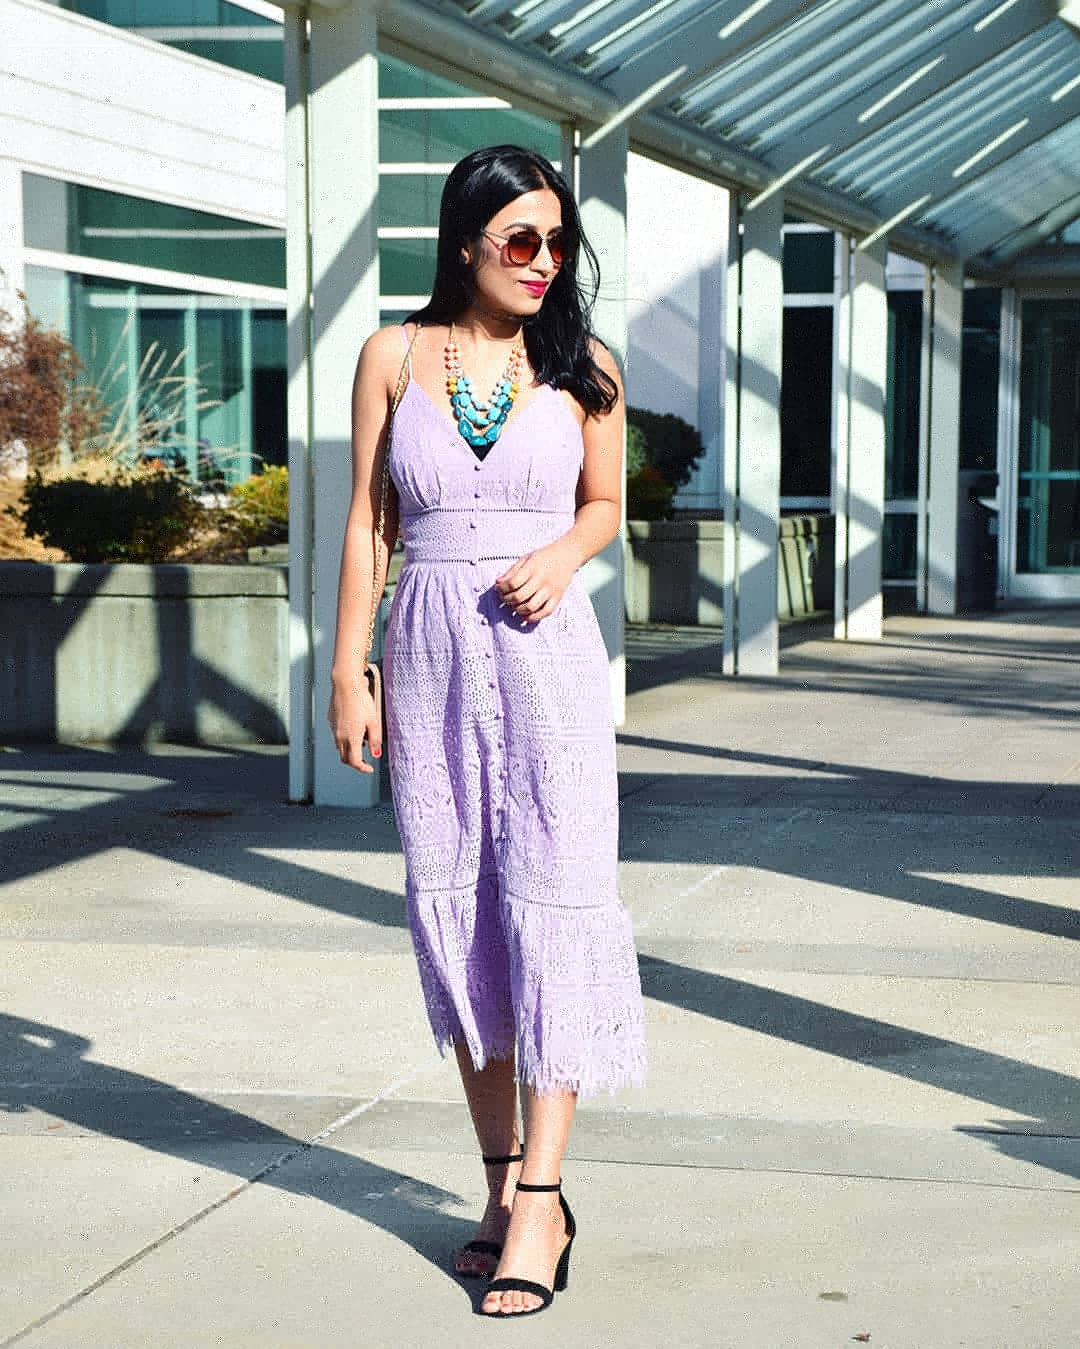 https://www.pinkblushmaternity.com/p-48046-lavender-lace-button-front-cami-dress.aspx?DepartmentID=2